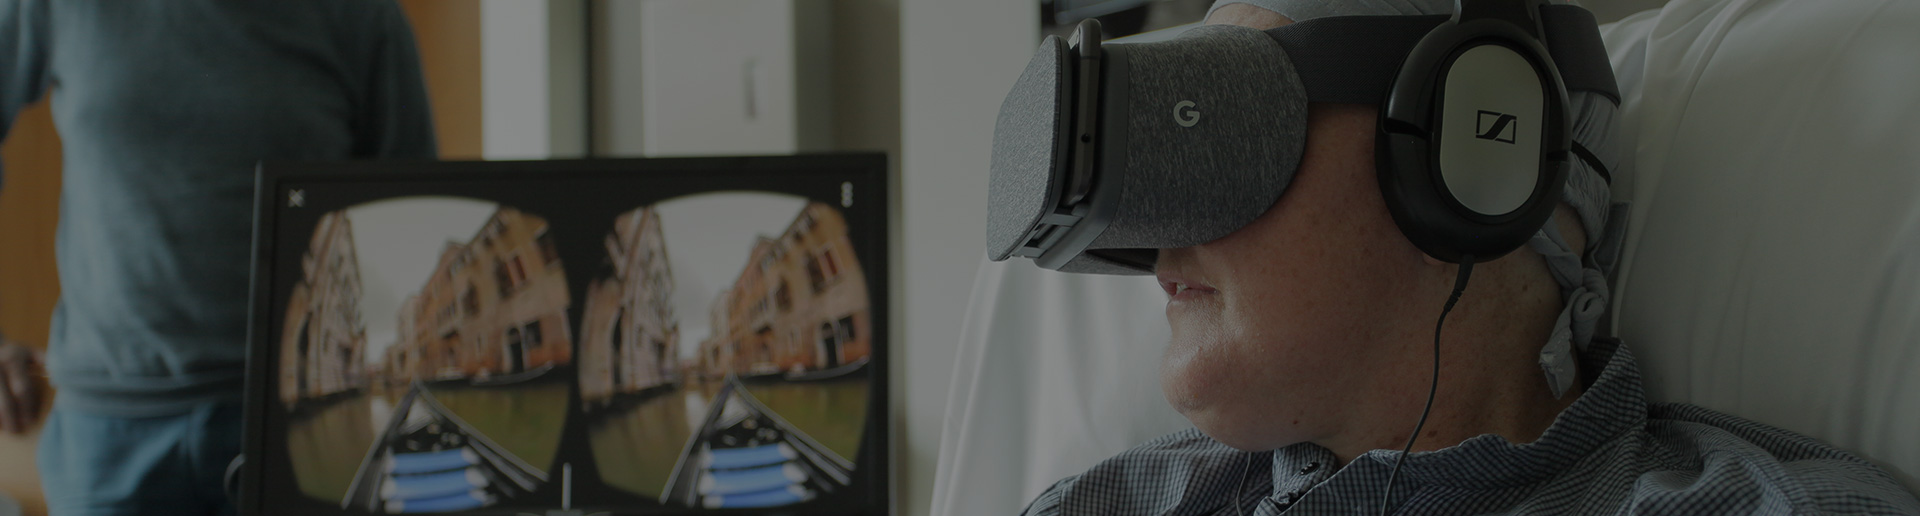 Extraordinary VR training experiences for extraordinary people.